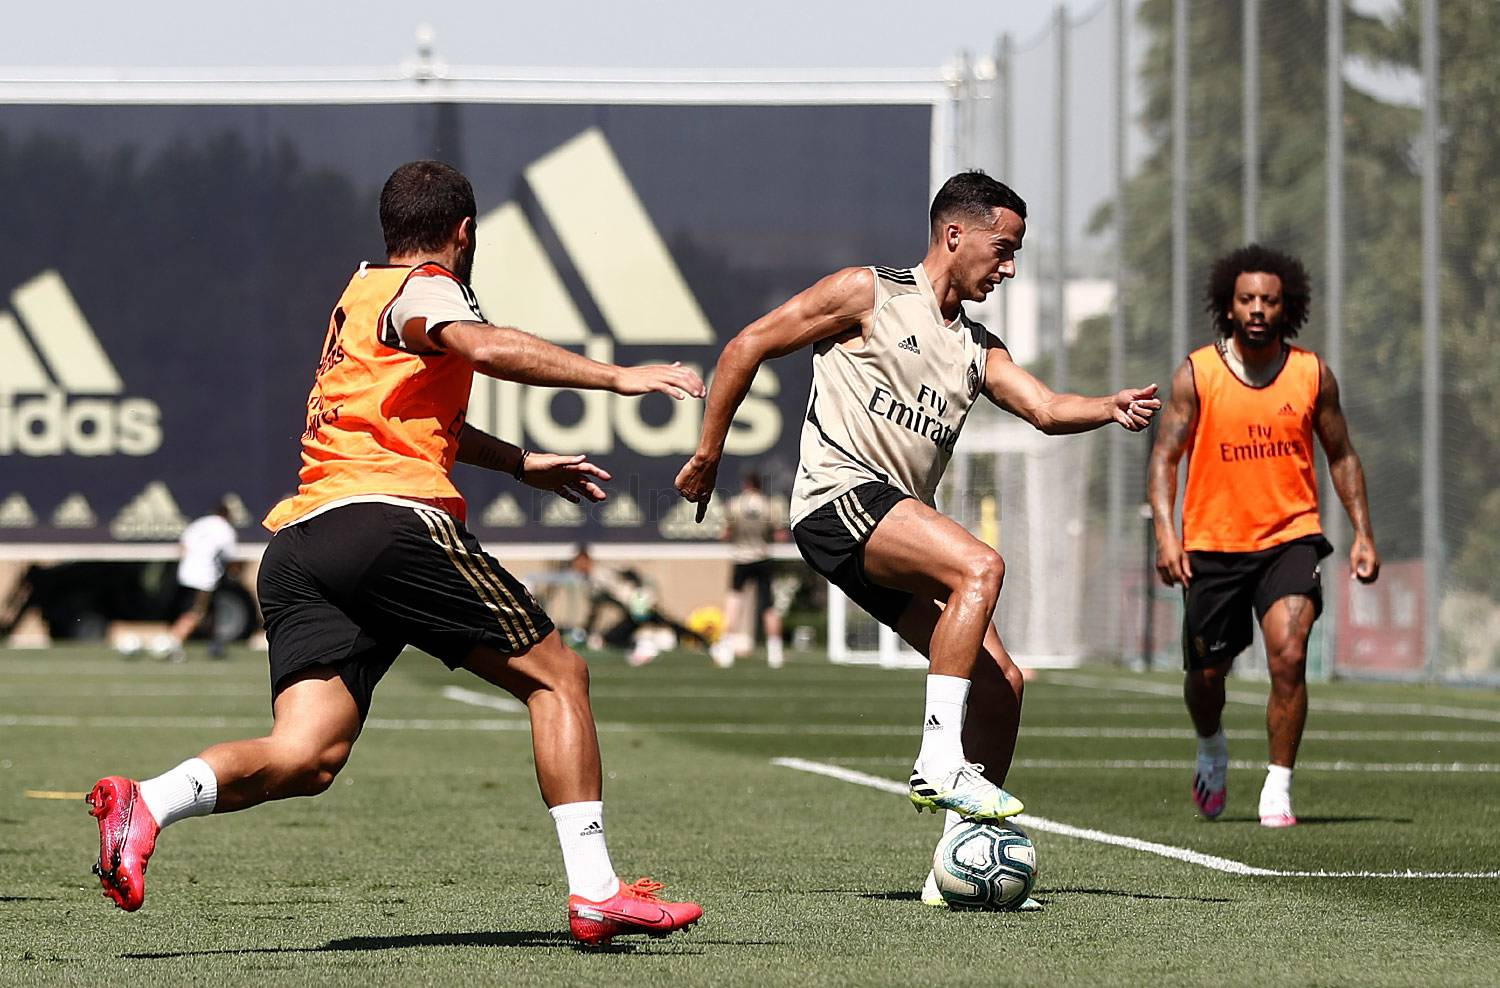 Real Madrid - Entrenamiento del Real Madrid  - 30-06-2020